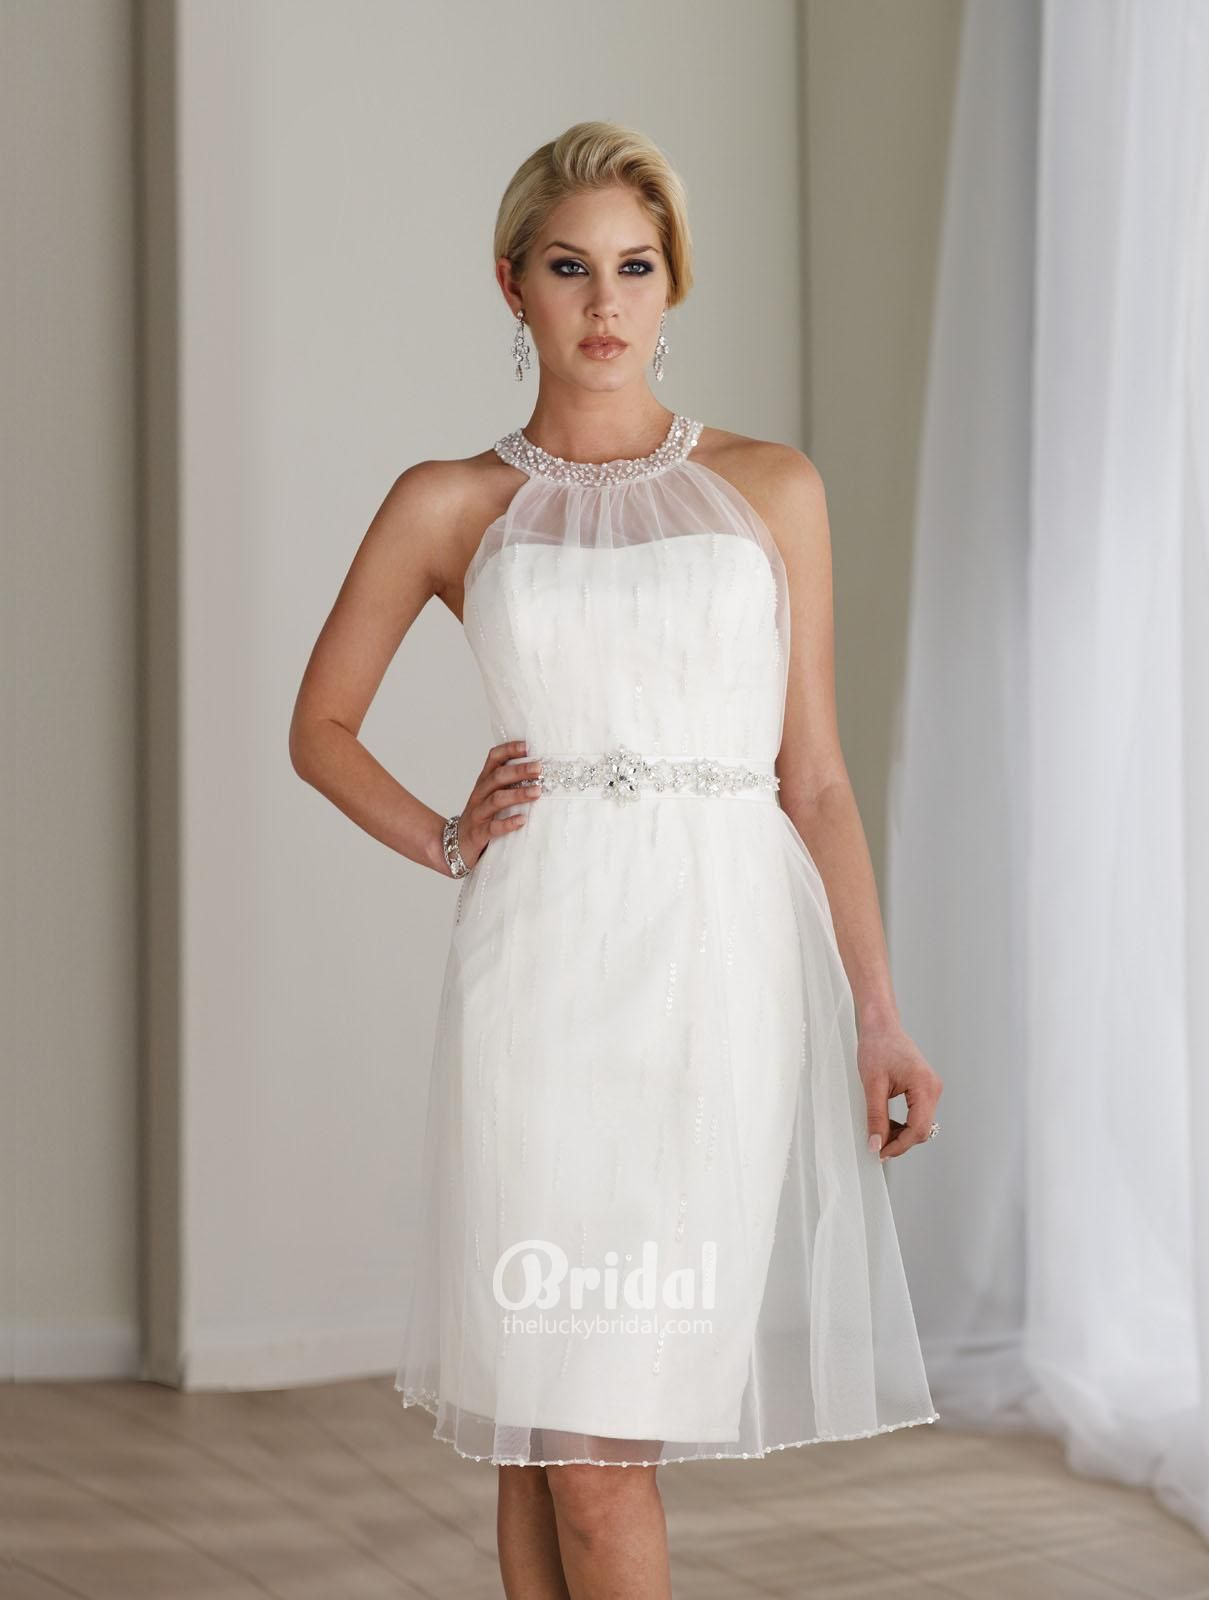 Vow renewal dress for th anniversary courthouse wedding ideas